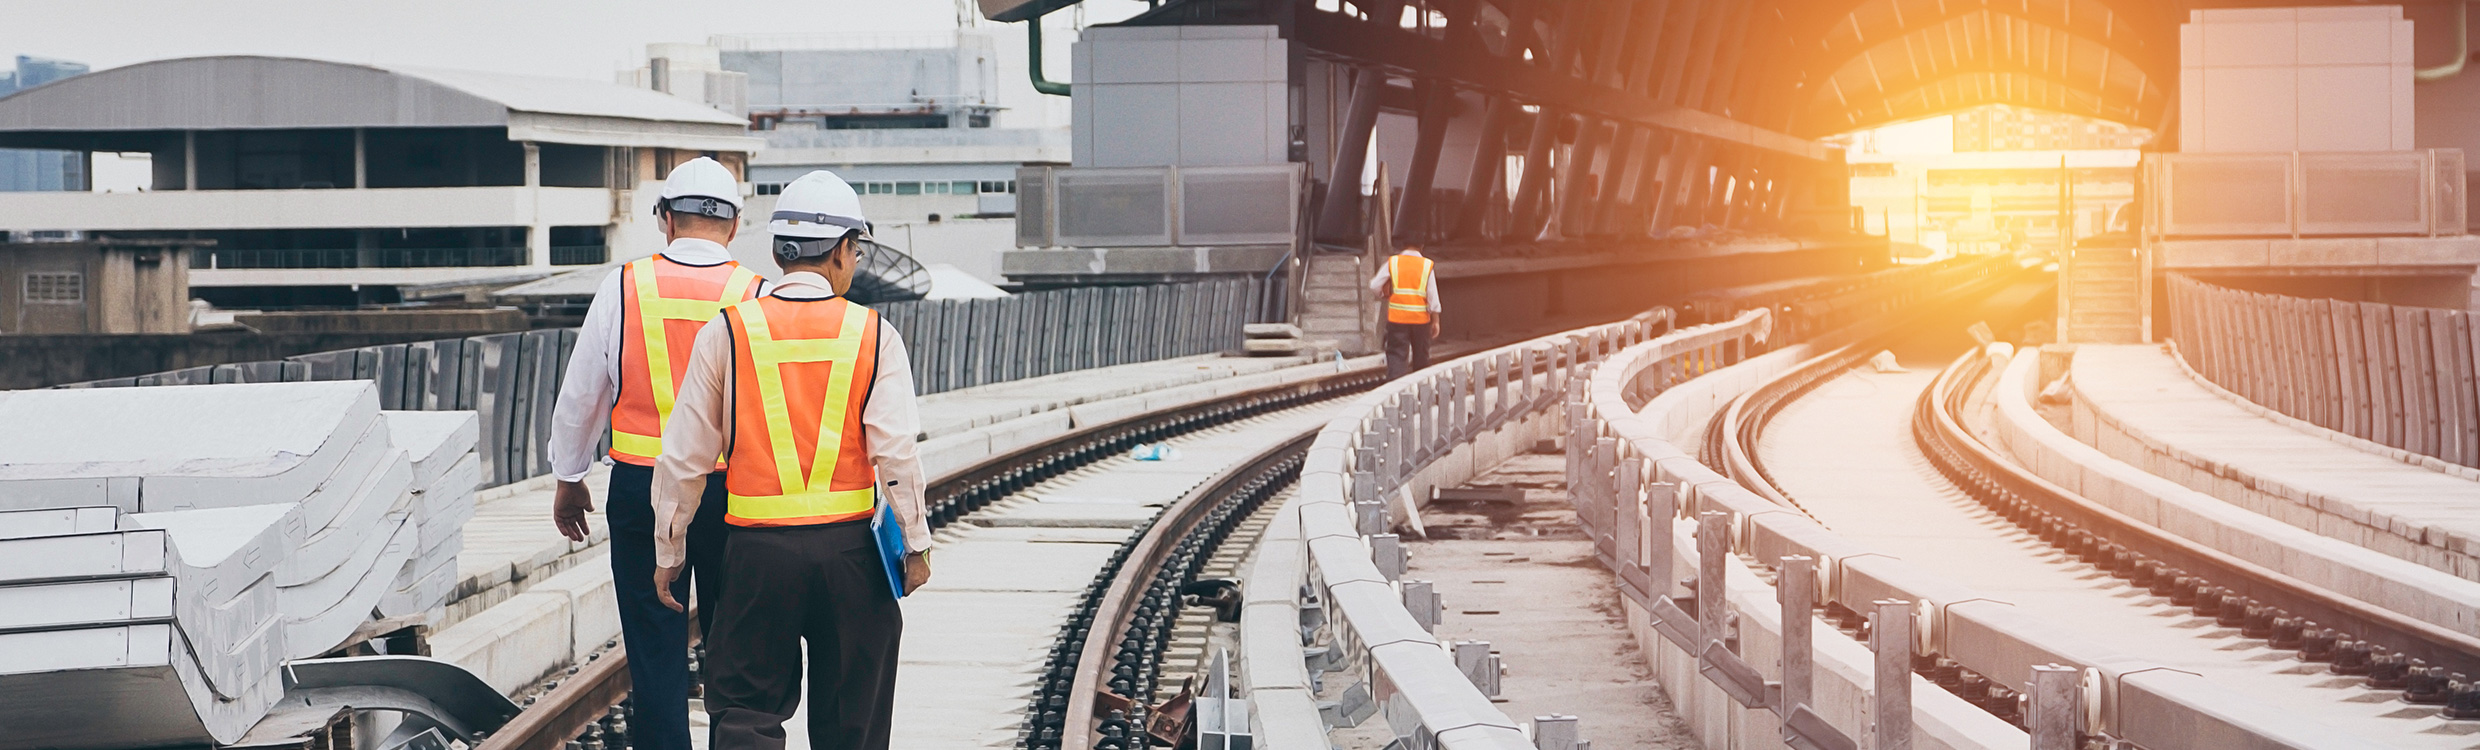 Hexagon Geosystems - Railways Solutions - Inspection & Monitoring